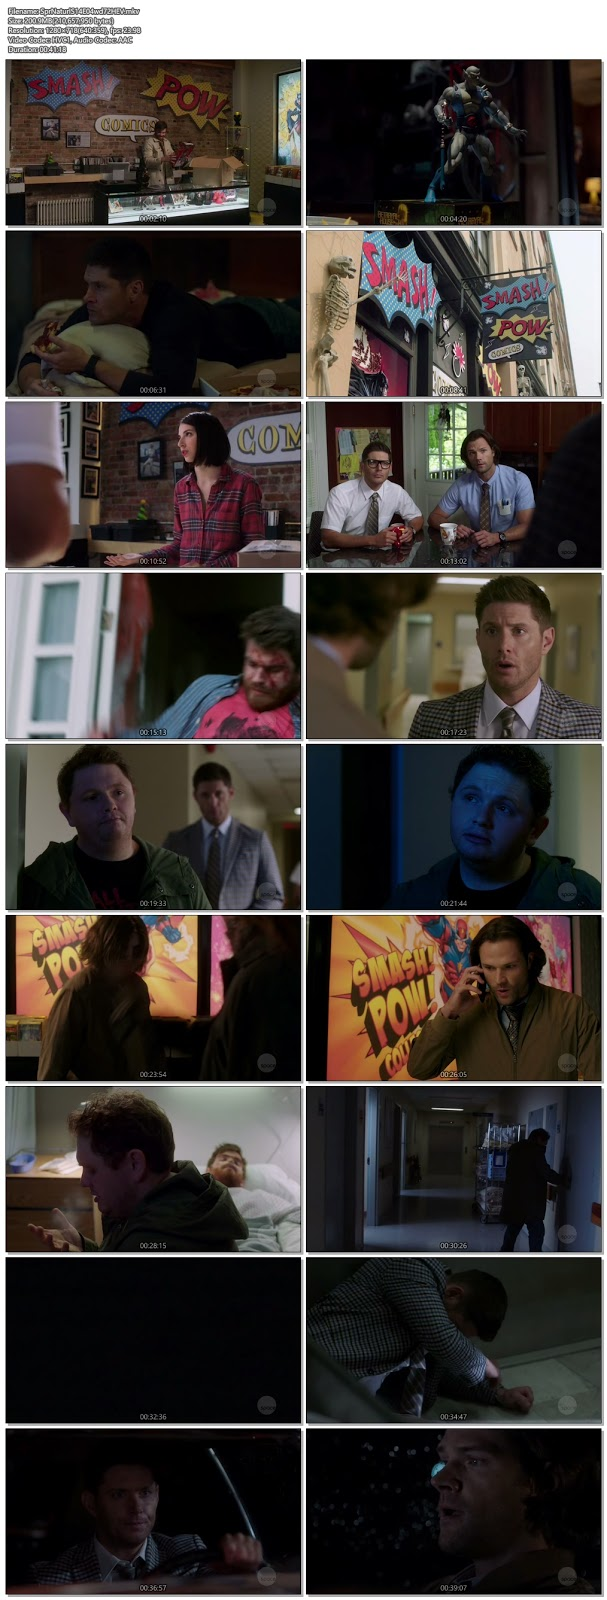 Supernatural S14 Episode 04 720p HDTV 200MB ESub x265 HEVC , hollwood tv series Supernatural S14 Episode 01 720p hdtv tv show hevc x265 hdrip 200mb 250mb free download or watch online at world4ufree.vip